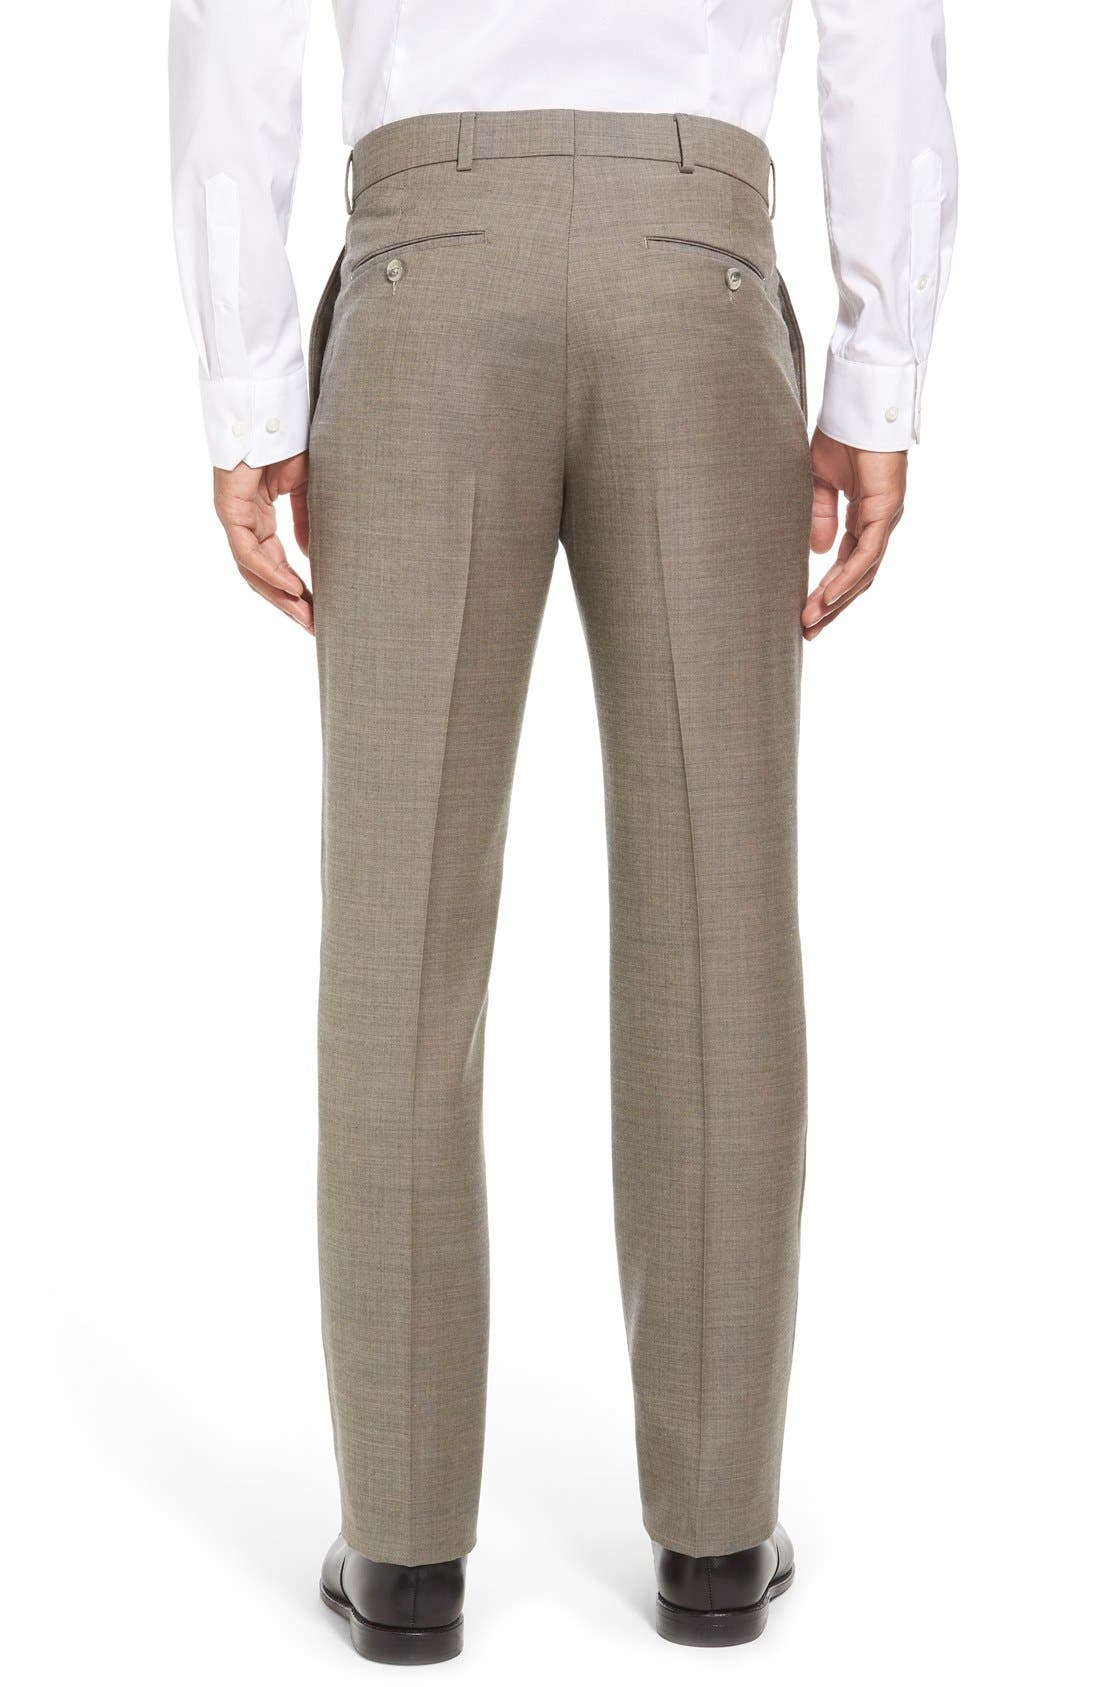 Flat Front Sharkskin Wool Trousers,                             Alternate thumbnail 3, color,                             British Tan